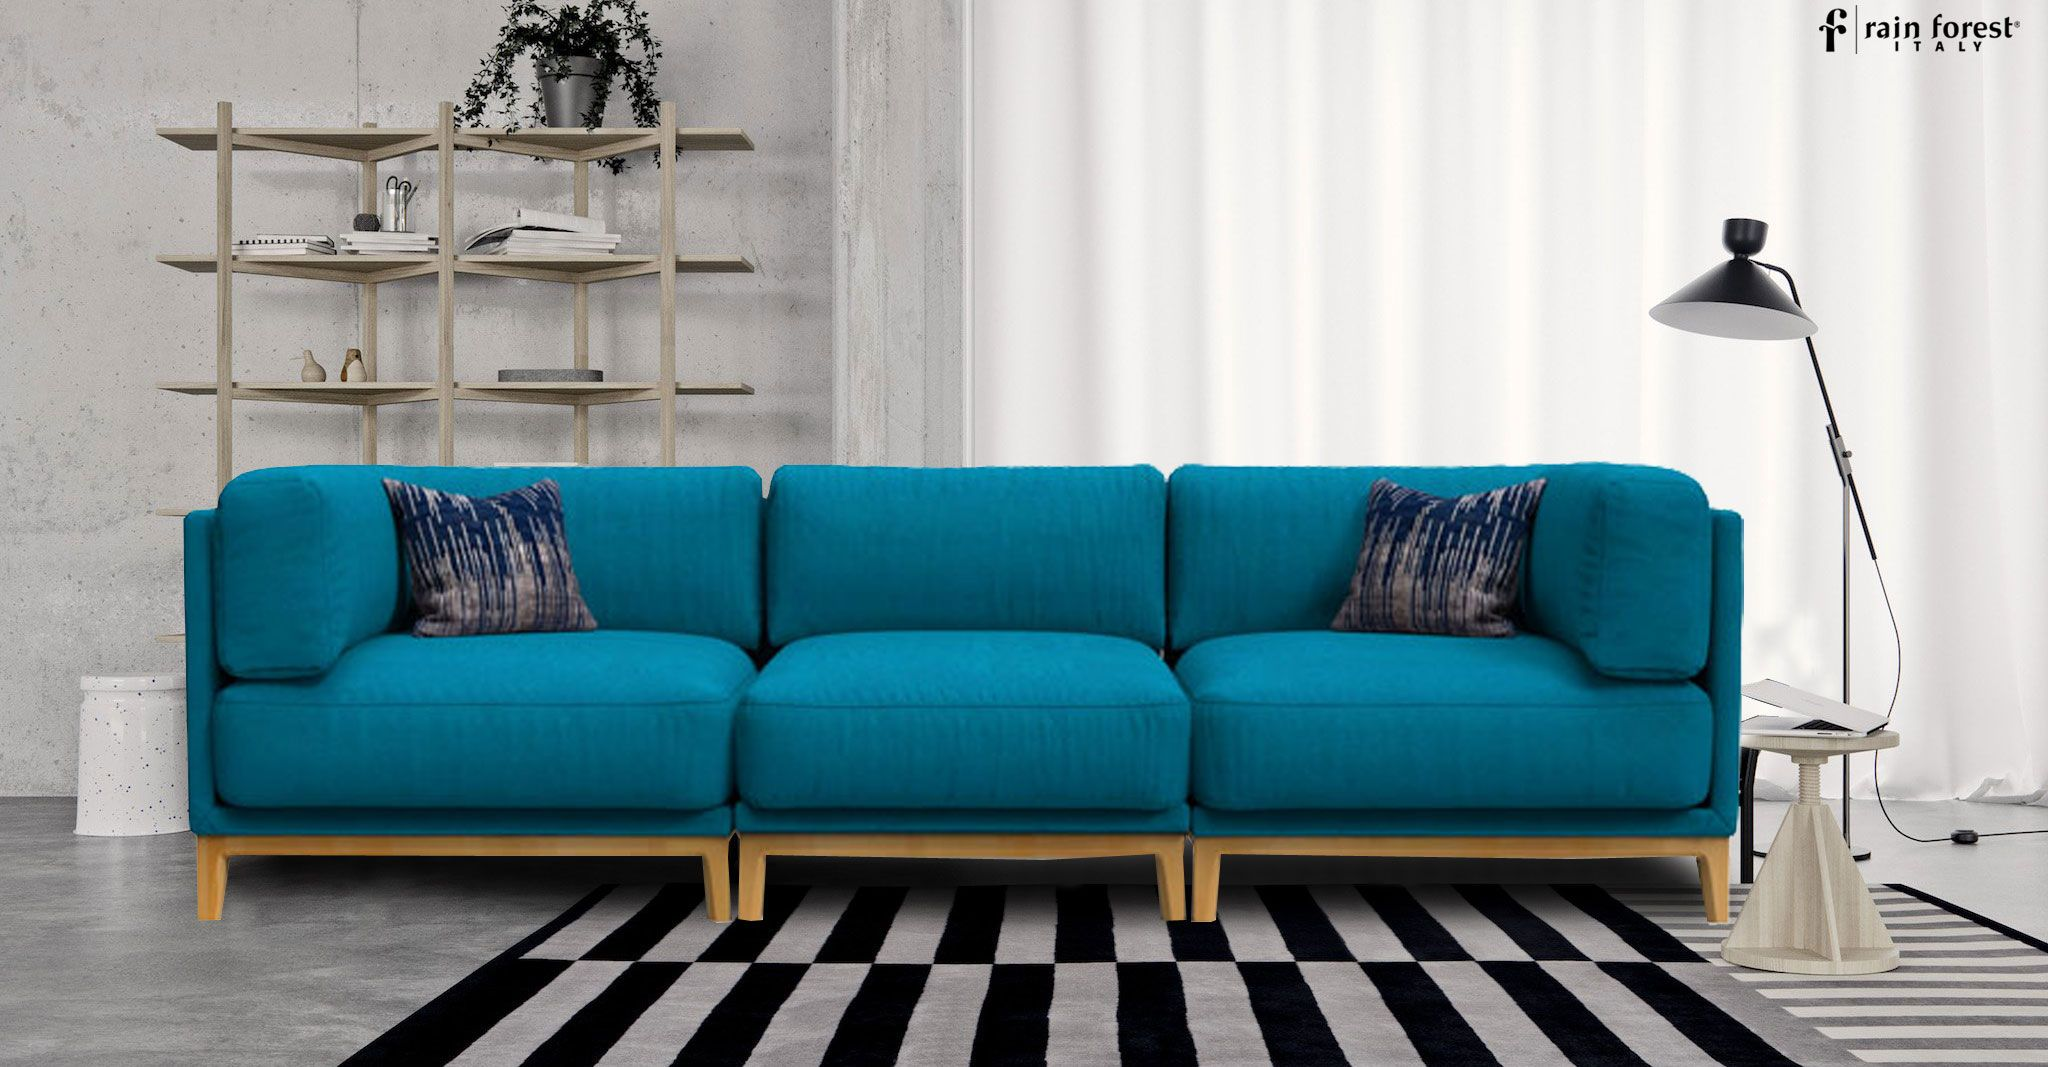 Sofa Sofa Designs Sofa Design Sofa Ideas Sofa Set For Home 3 Seater Sofa 2 Seater Sofa Sectional Sofa Sectional Sofa Ideas Wooden Sofa Sofa Living Room Sofa Design Sofa Sofa Design